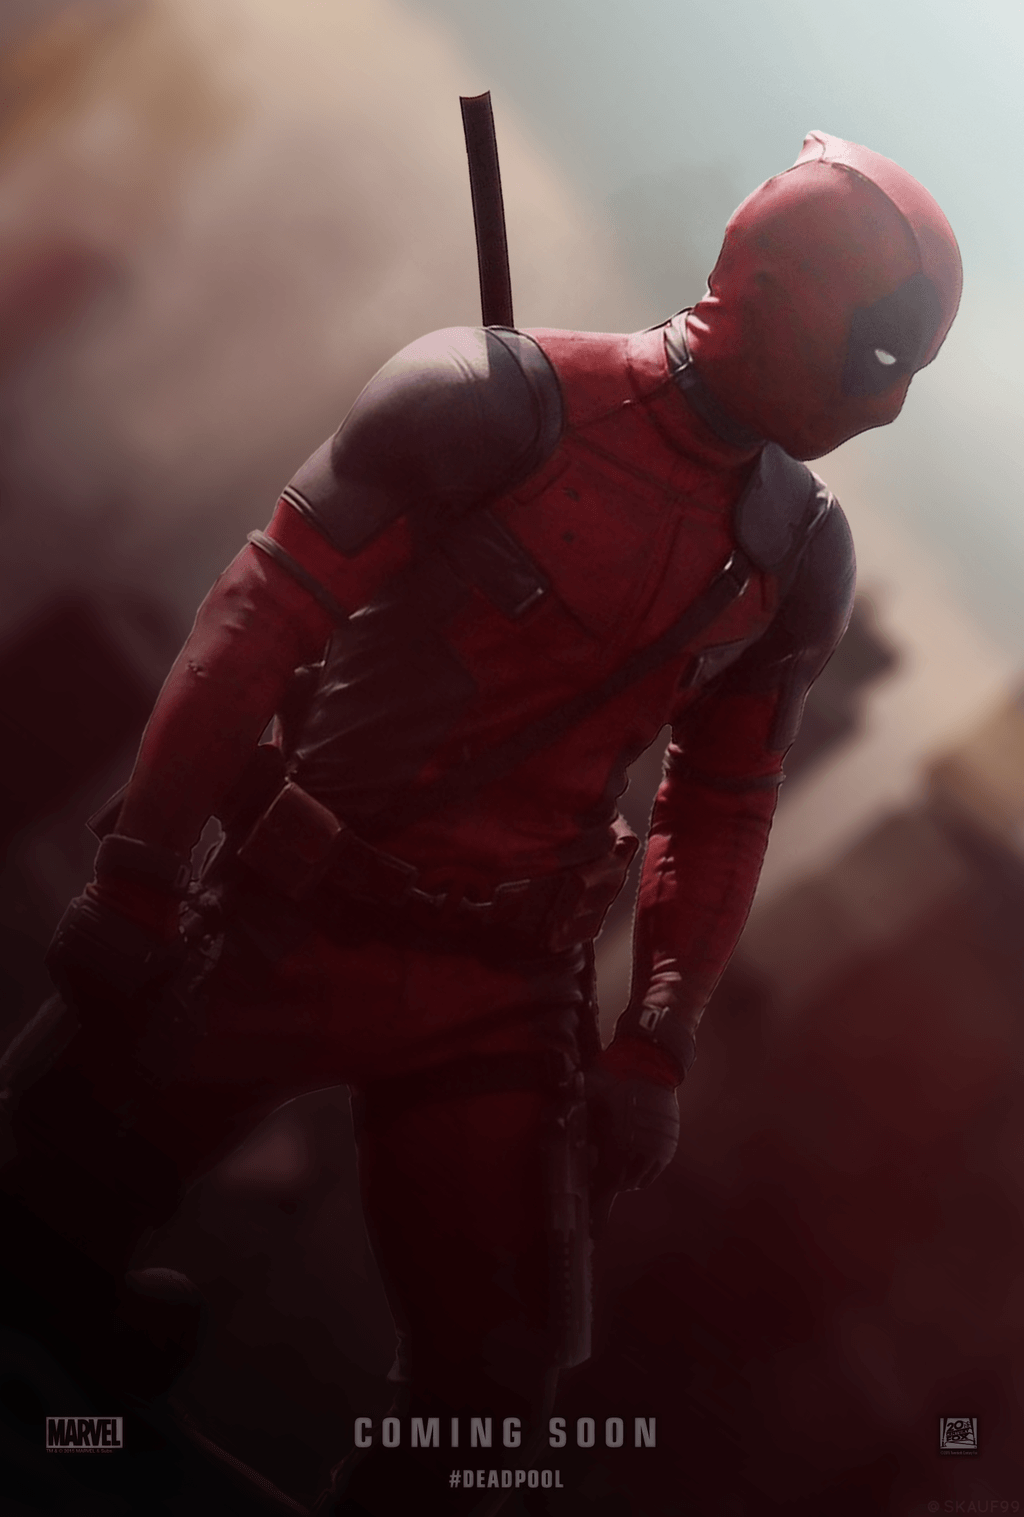 1024x1517 Deadpool Movie Wallpaper by hectorolguin434 - Dreamsky10.com Best ...